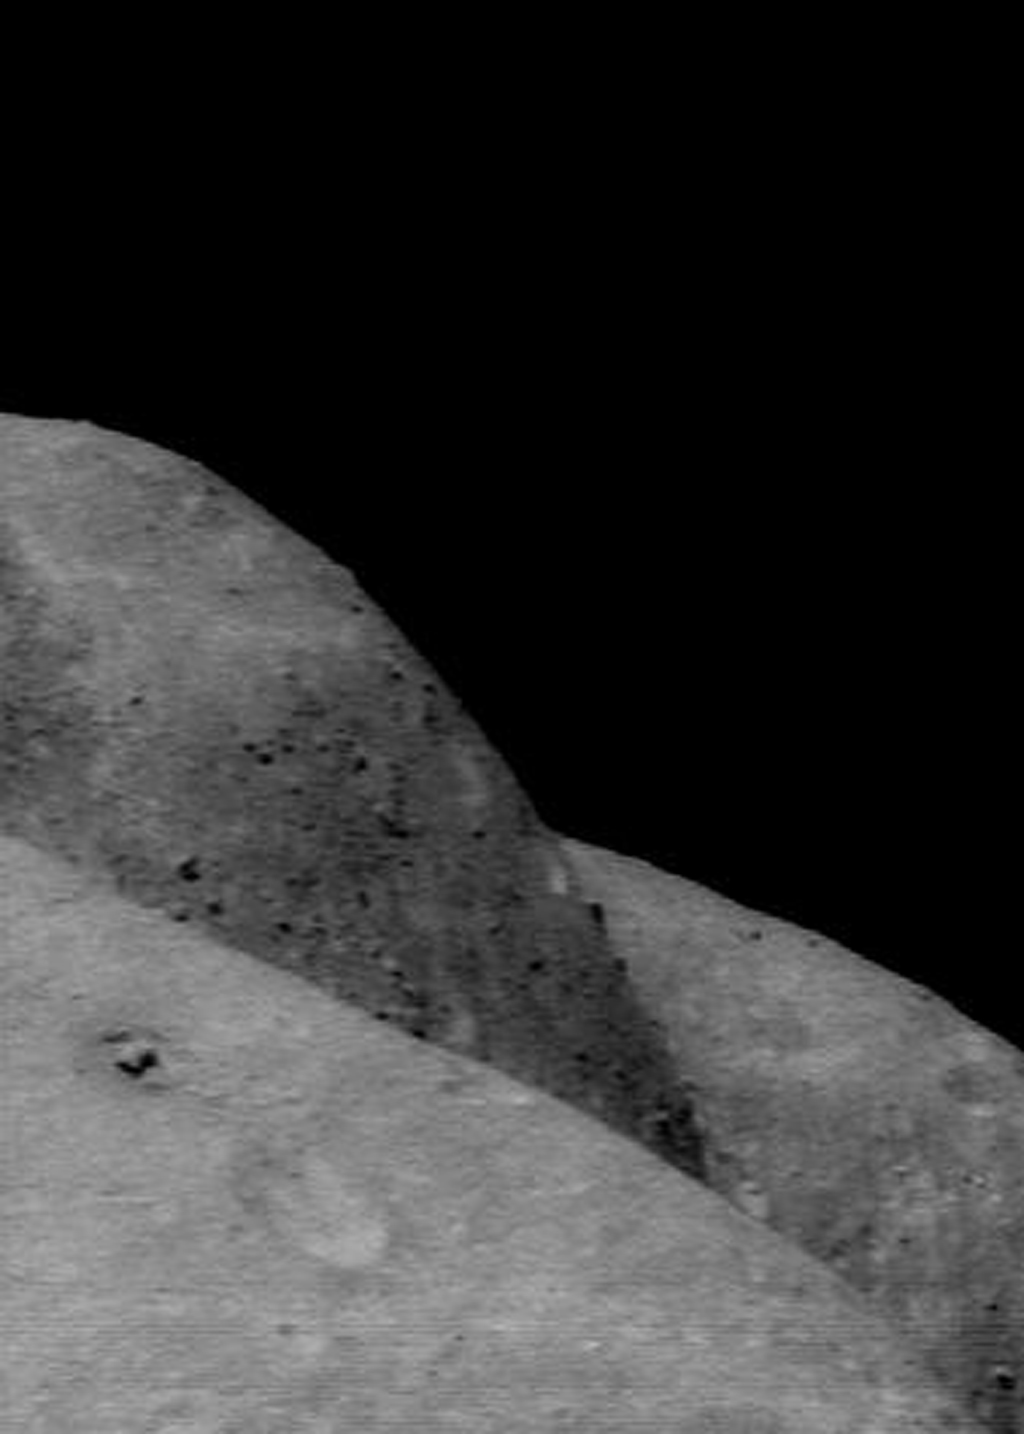 This image of asteroid Eros, taken by NASA's NEAR Shoemaker on Dec. 9, 2000, shows curvatures in the foreground and background along the eastern and western edges of the saddle.